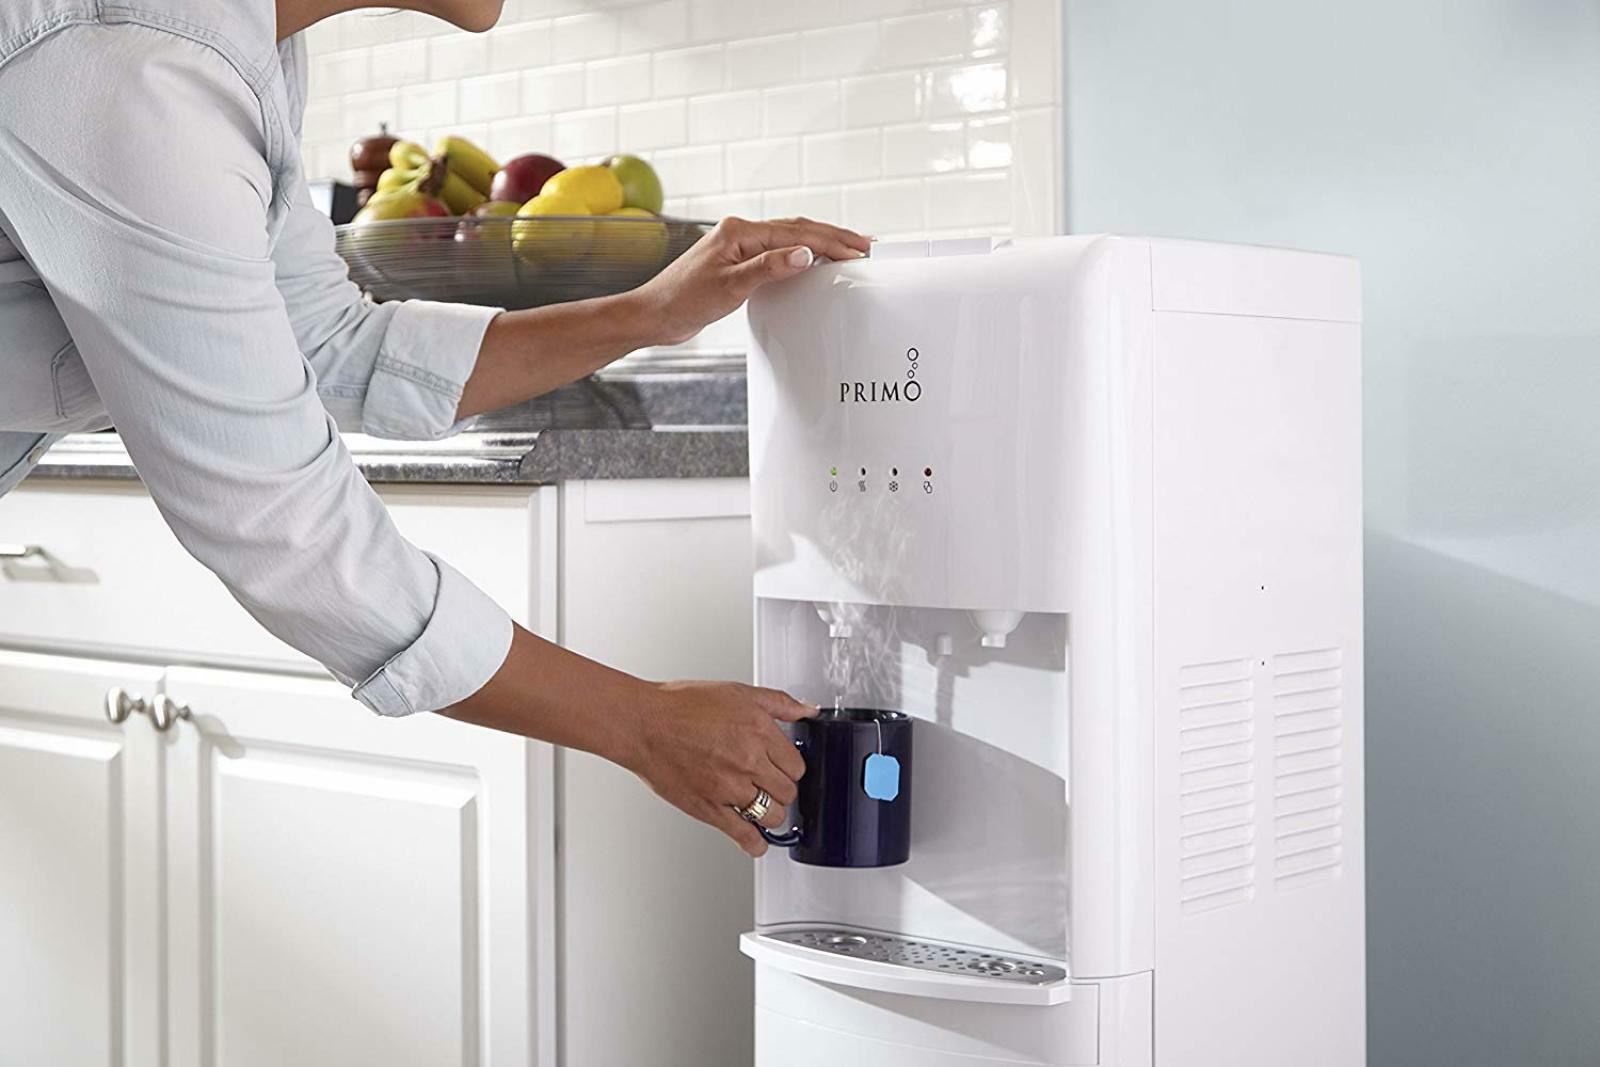 Details about Water Cooler Hot and Cold Dispenser Kitchen Water Filter  Office Home White